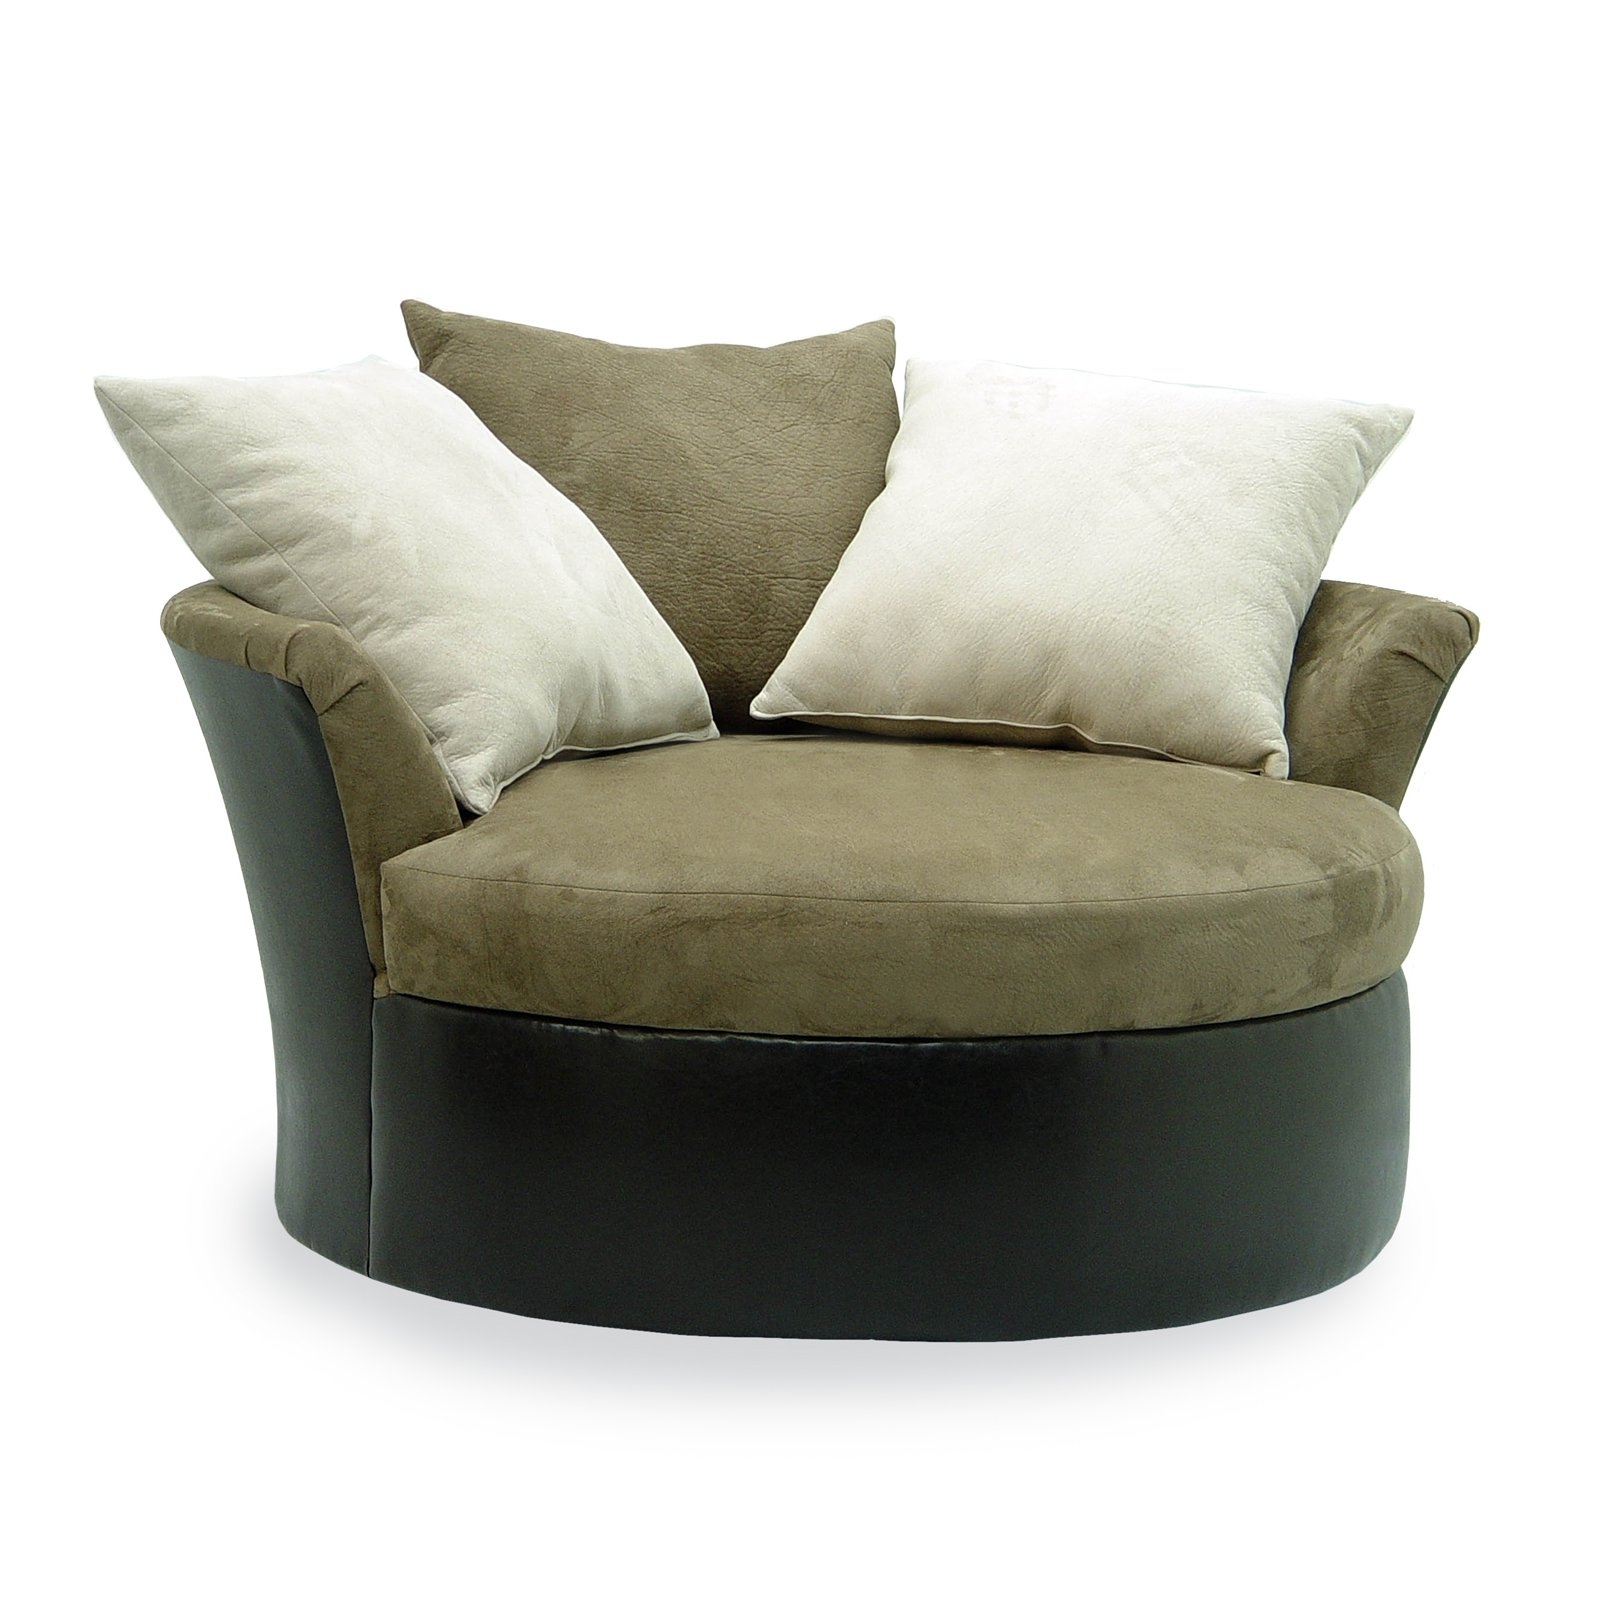 Well Known Buy Accent Chaise Lounge Chairs For Your Home – Furniture And In Chaise Lounge Chairs (View 13 of 15)